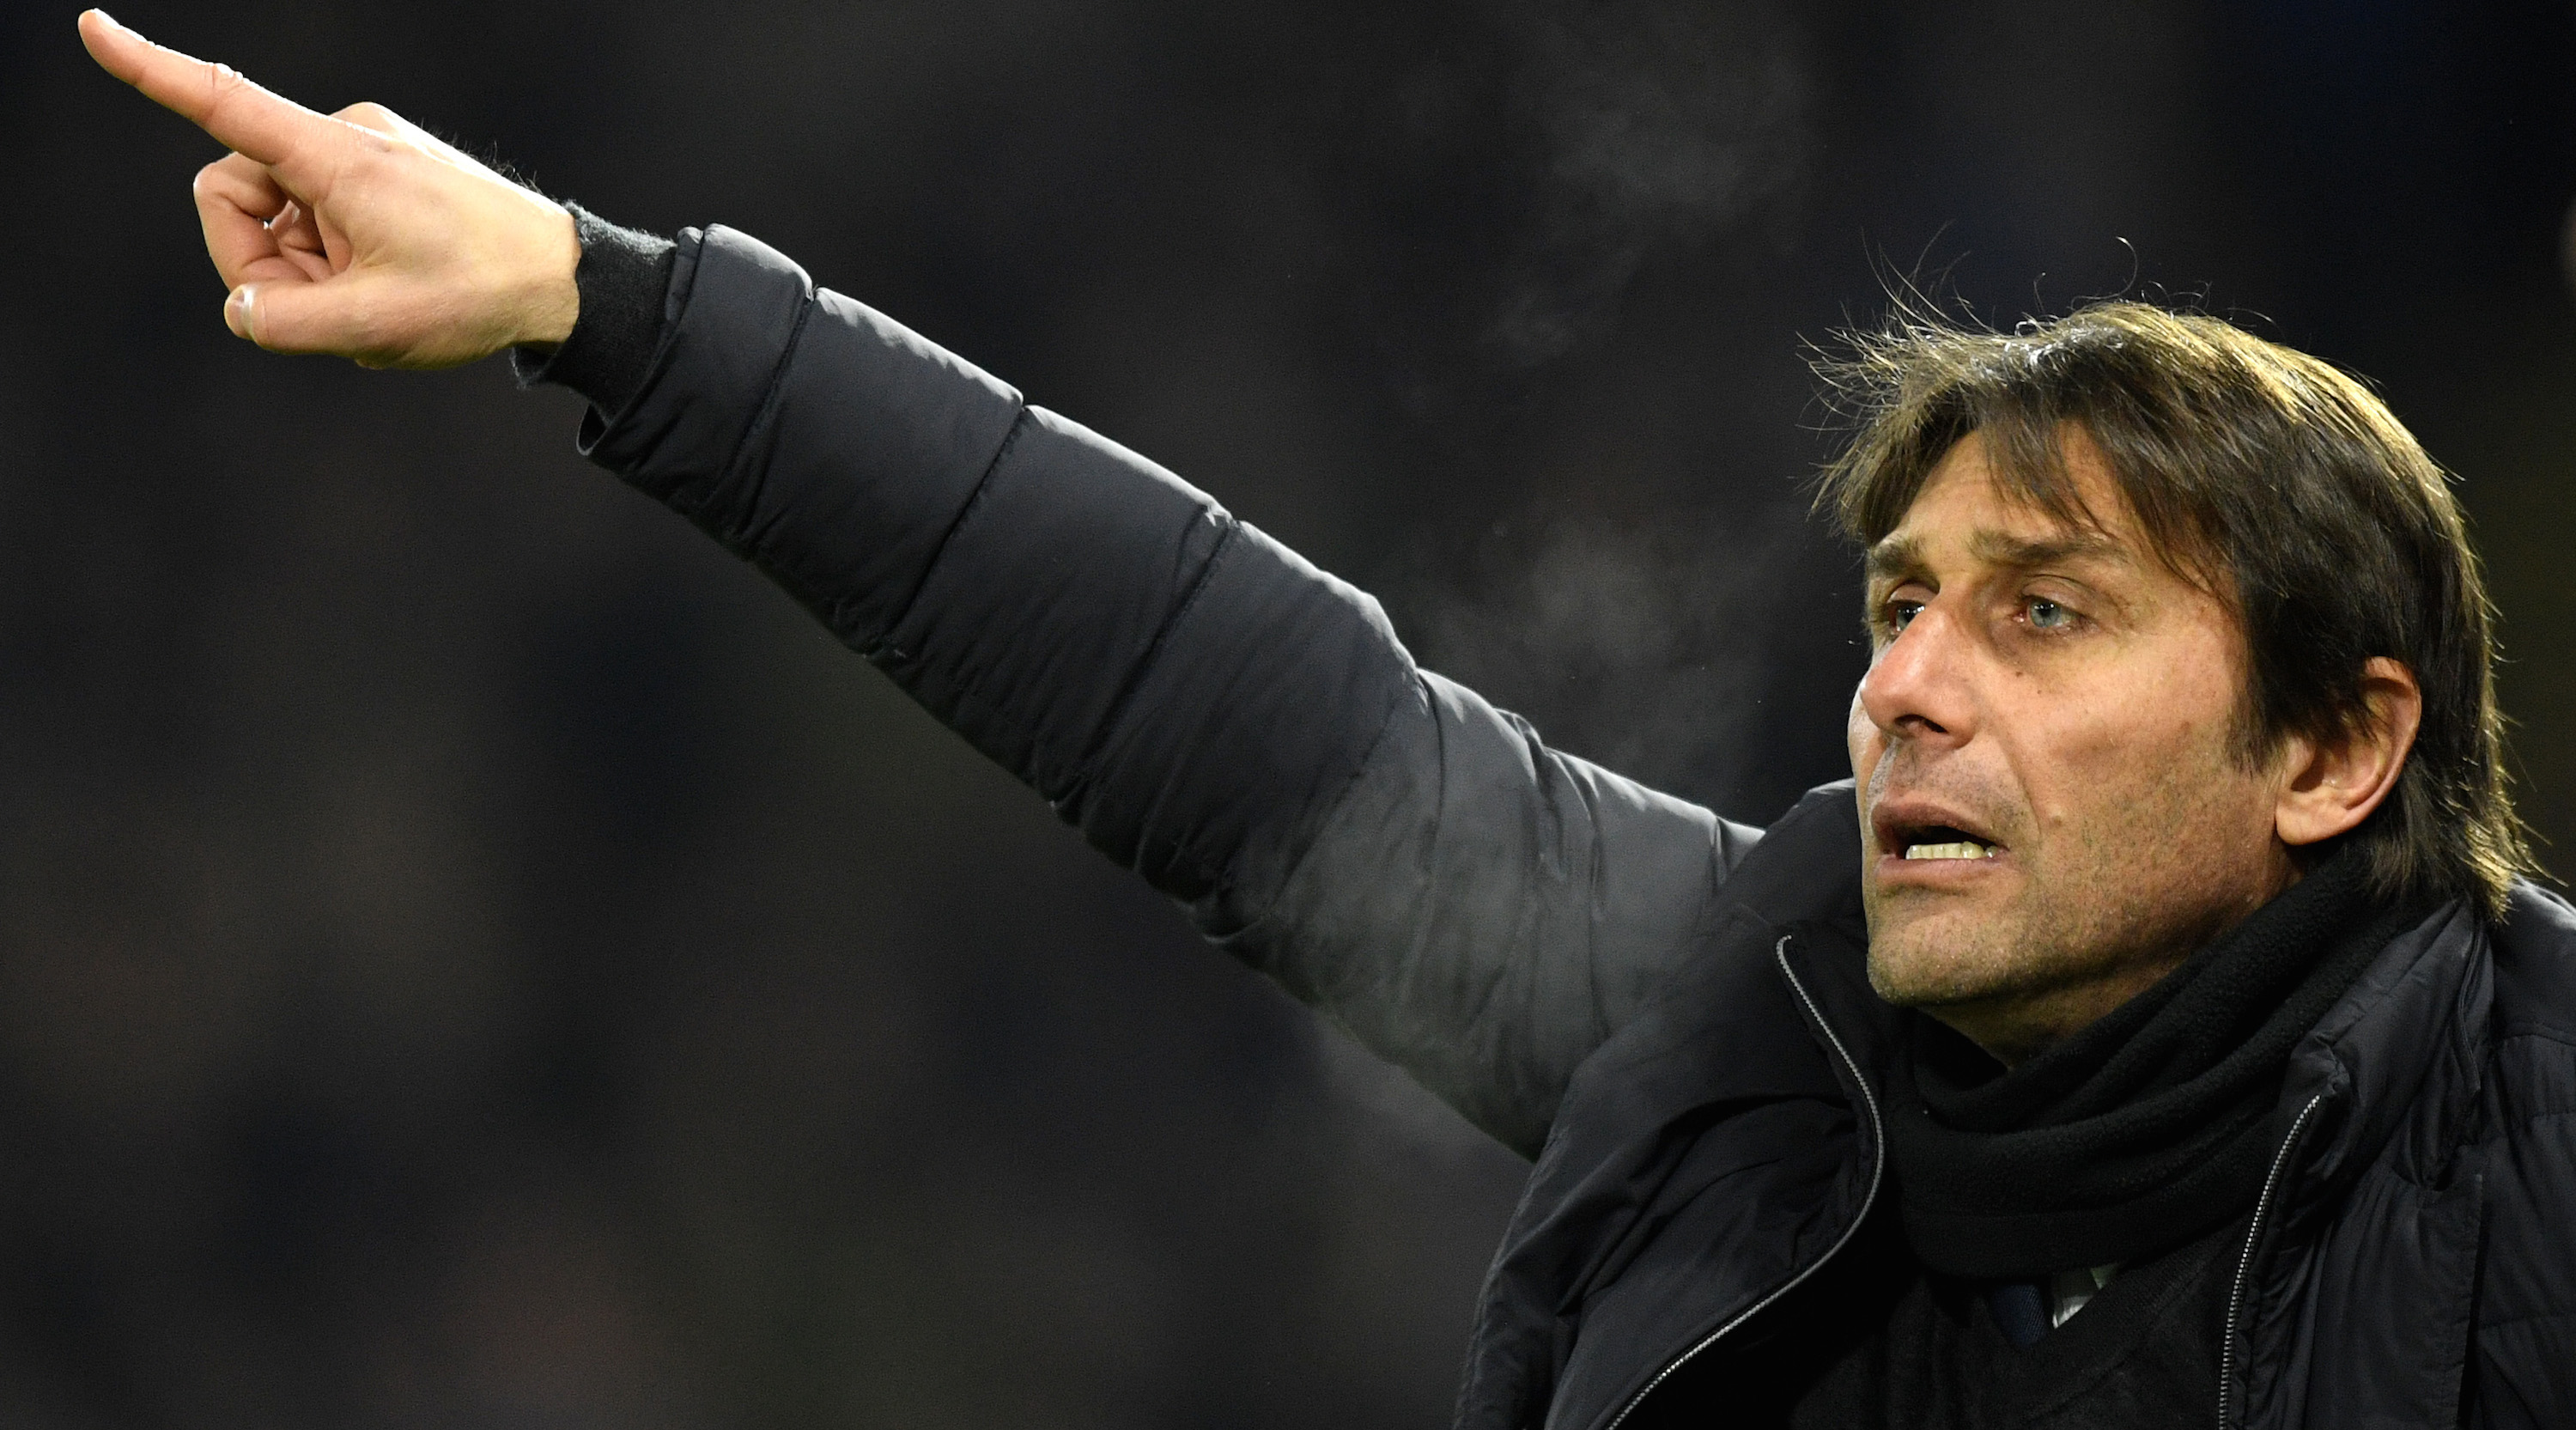 WATFORD, ENGLAND - FEBRUARY 05: Antonio Conte, Manager of Chelsea reacts during the Premier League match between Watford and Chelsea at Vicarage Road on February 5, 2018 in Watford, England. (Photo by Michael Regan/Getty Images)